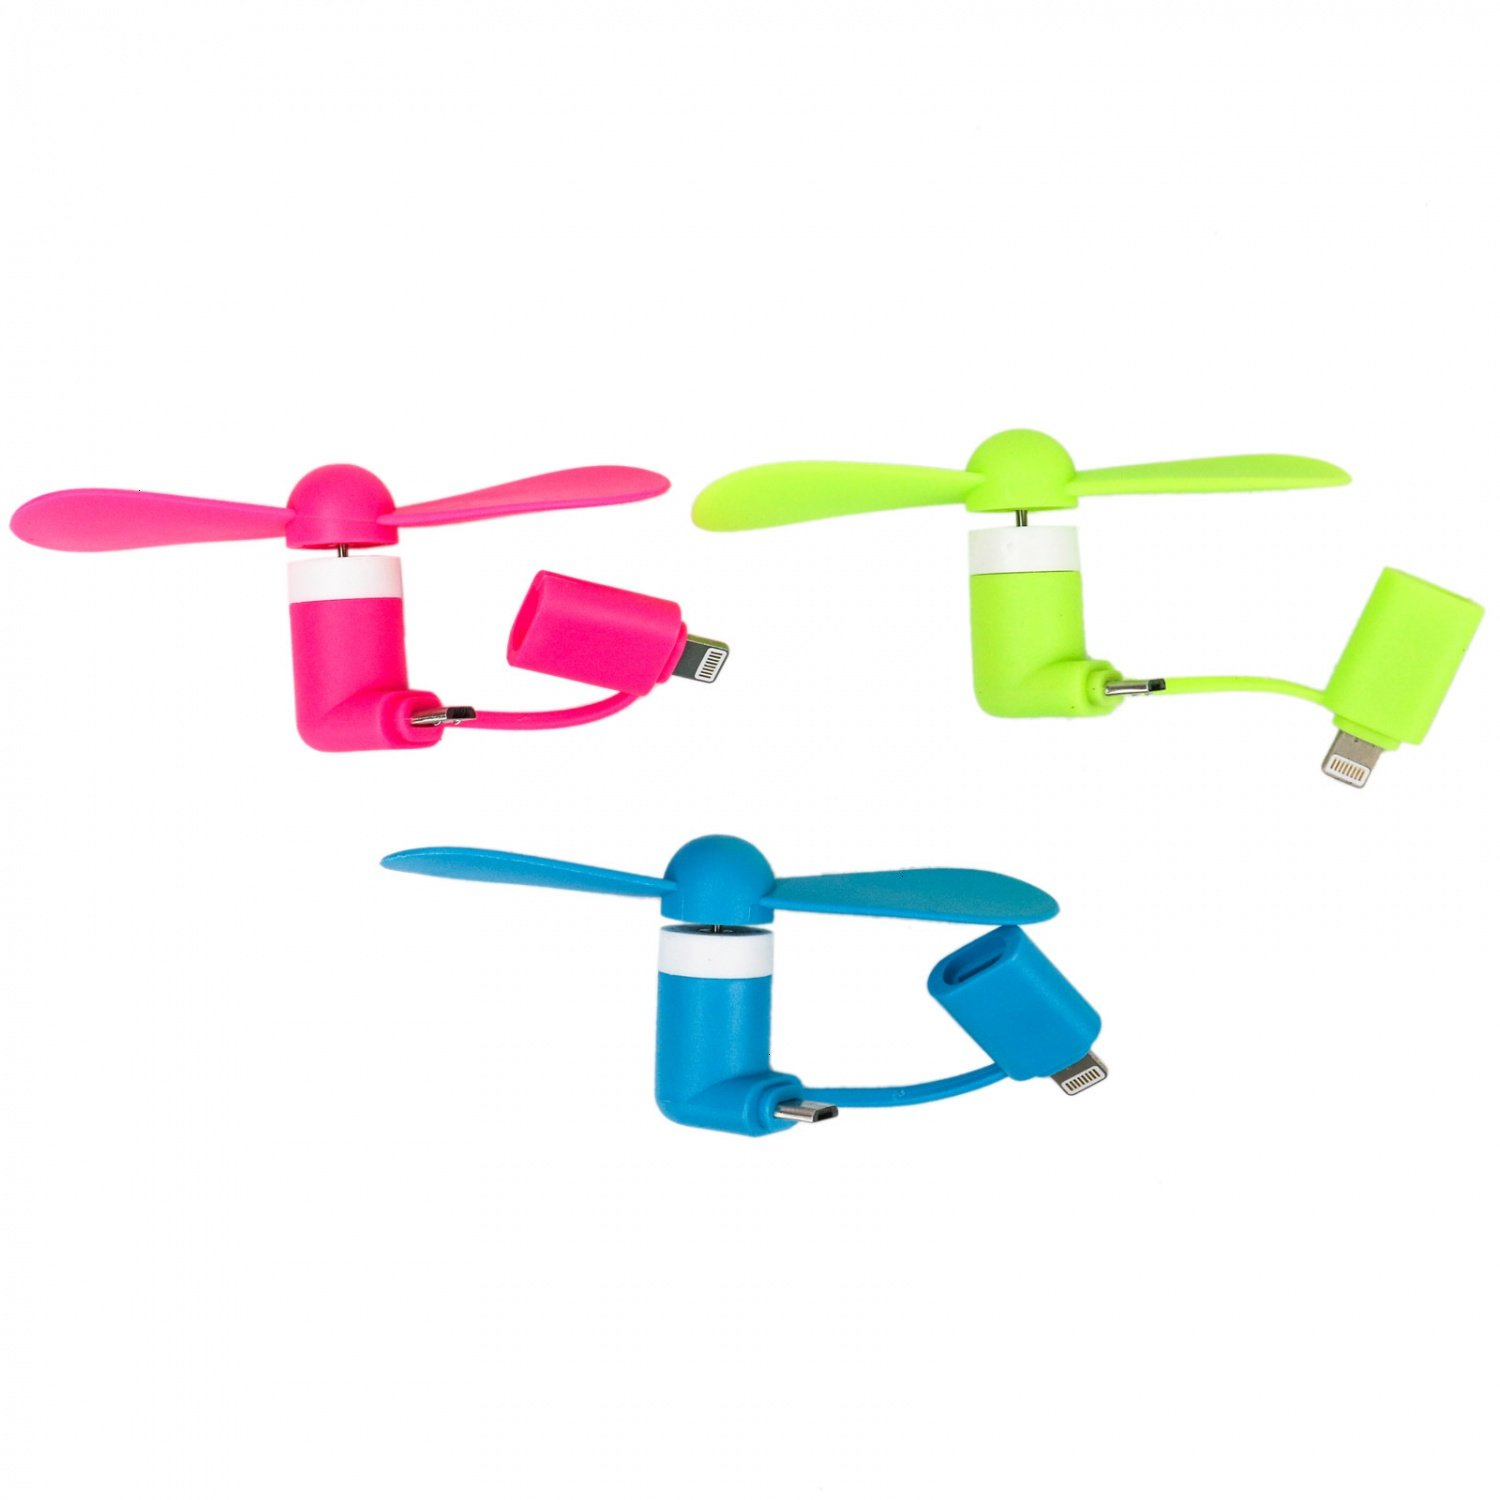 Buorsa 3 Pcs Portable Breeze Mini Phone Fan Colorful 2-in-1 for iPhone//iPad and Android Smartphone//Tablet Android Micro USB USB-C Connectors iPhone Accessories